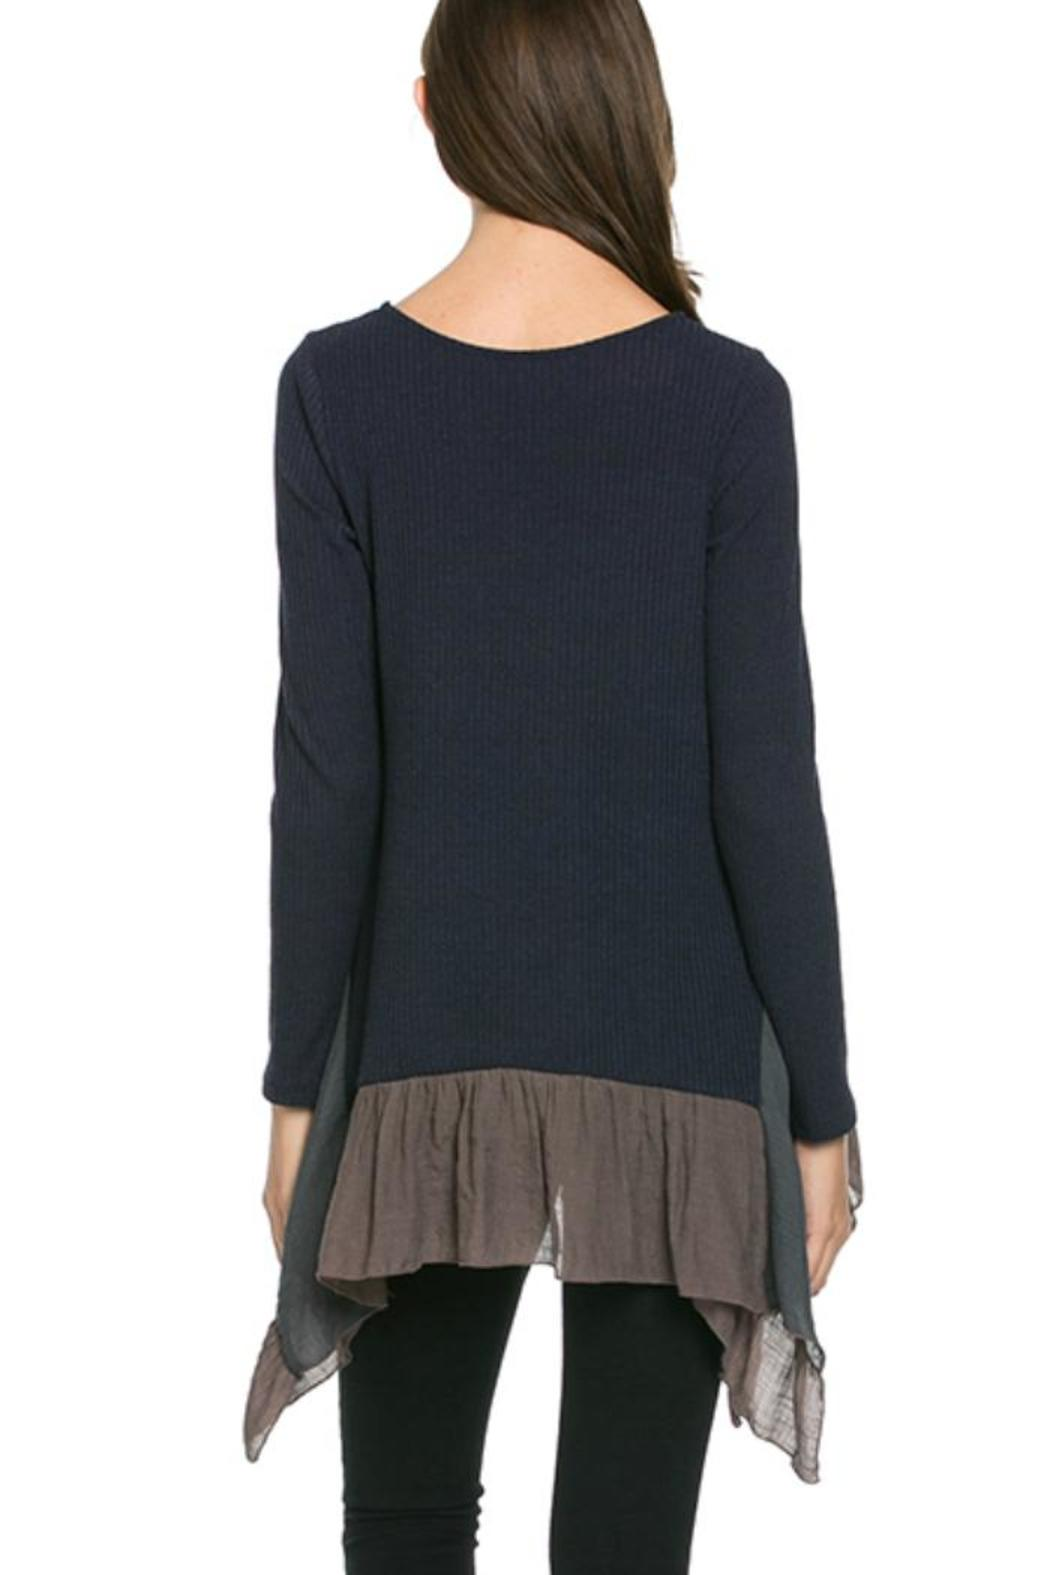 Mittoshop Ribbed Layered Tunic from North Carolina by Southern ...